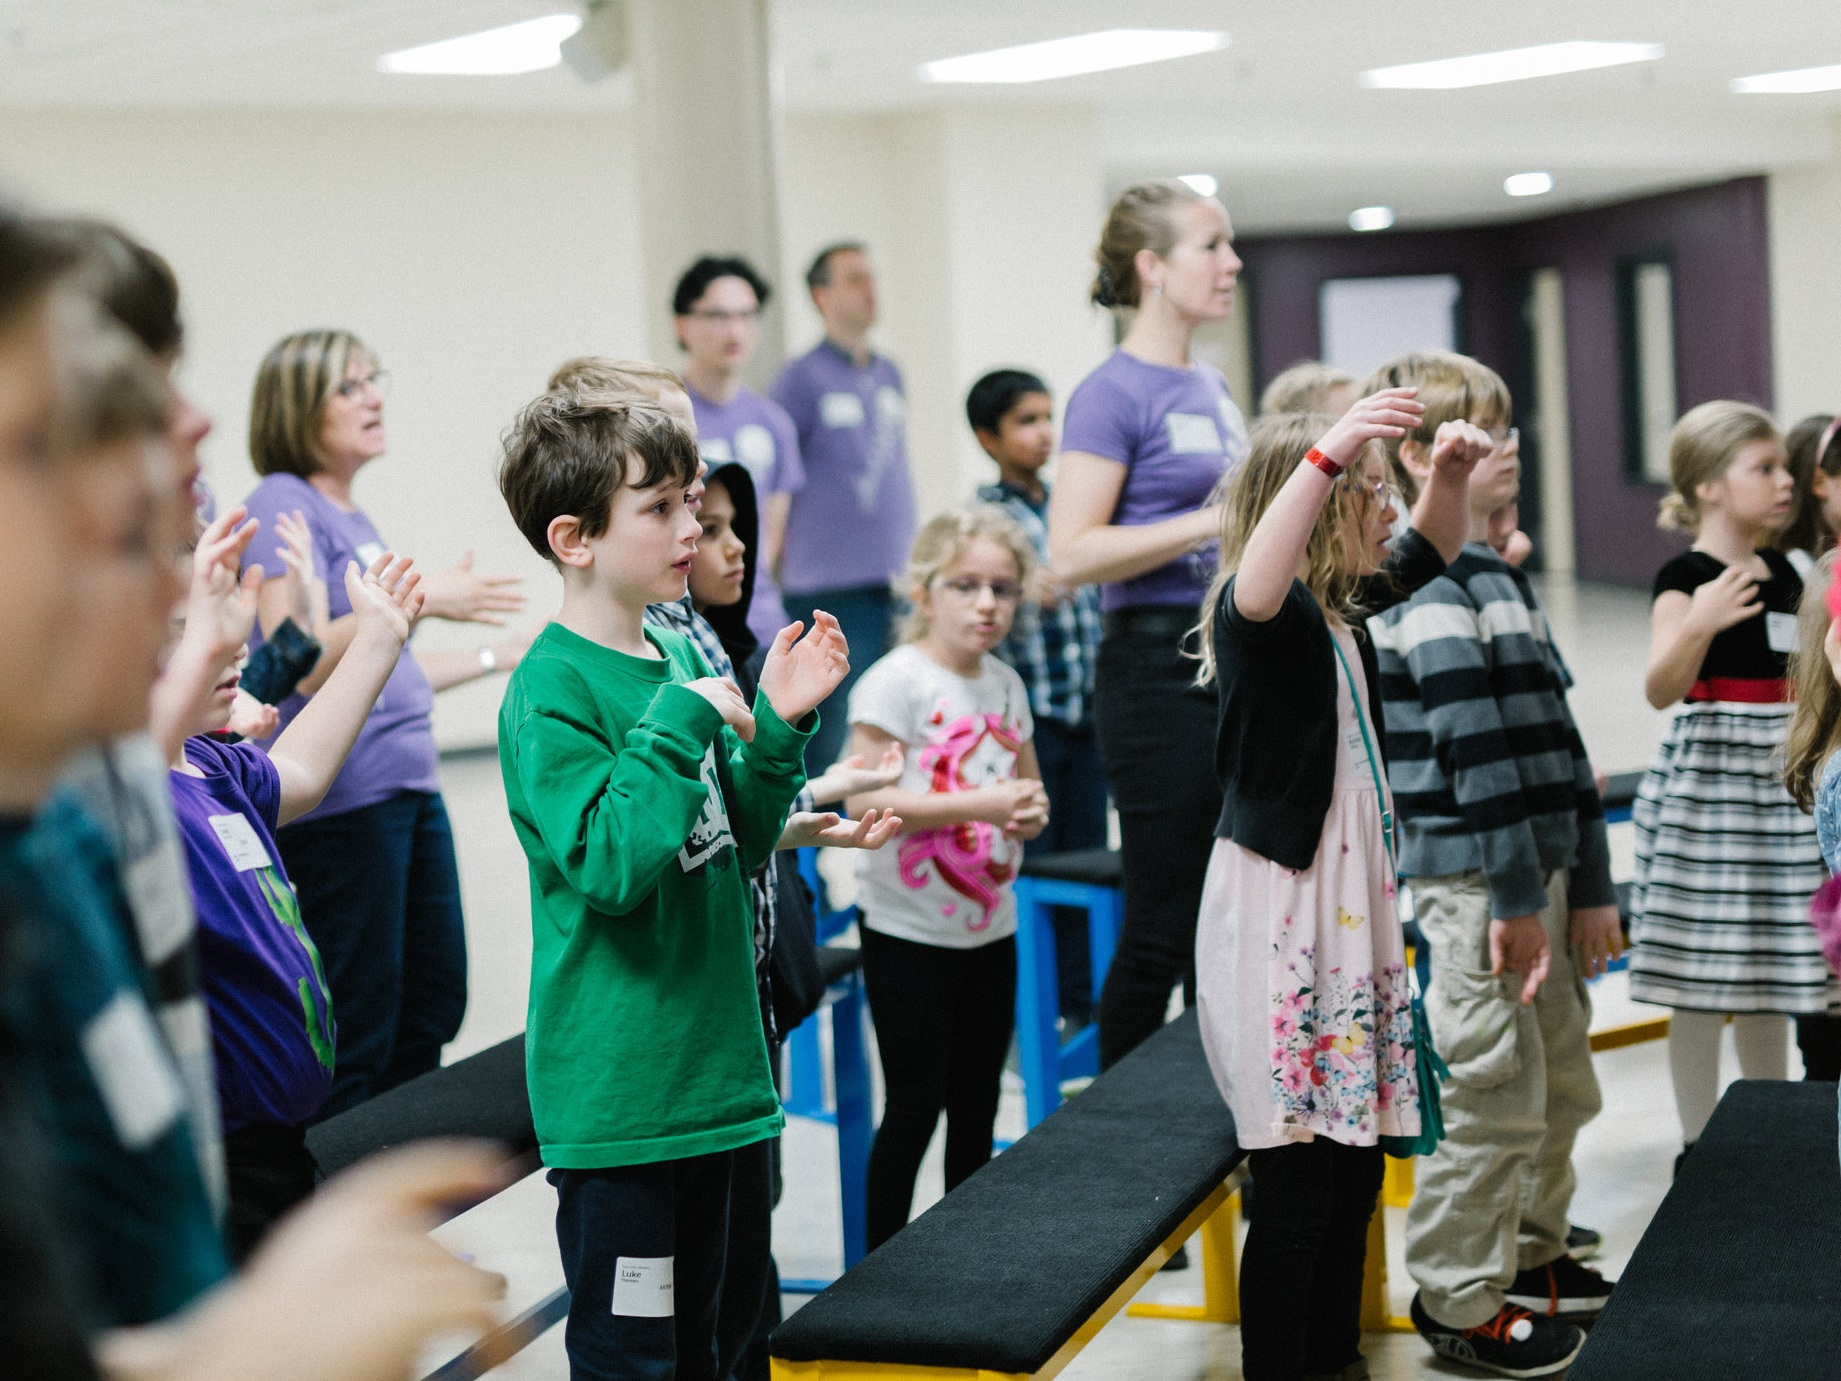 Kids Ministry - Programs and care for babies, toddlers and kids up to Grade 5